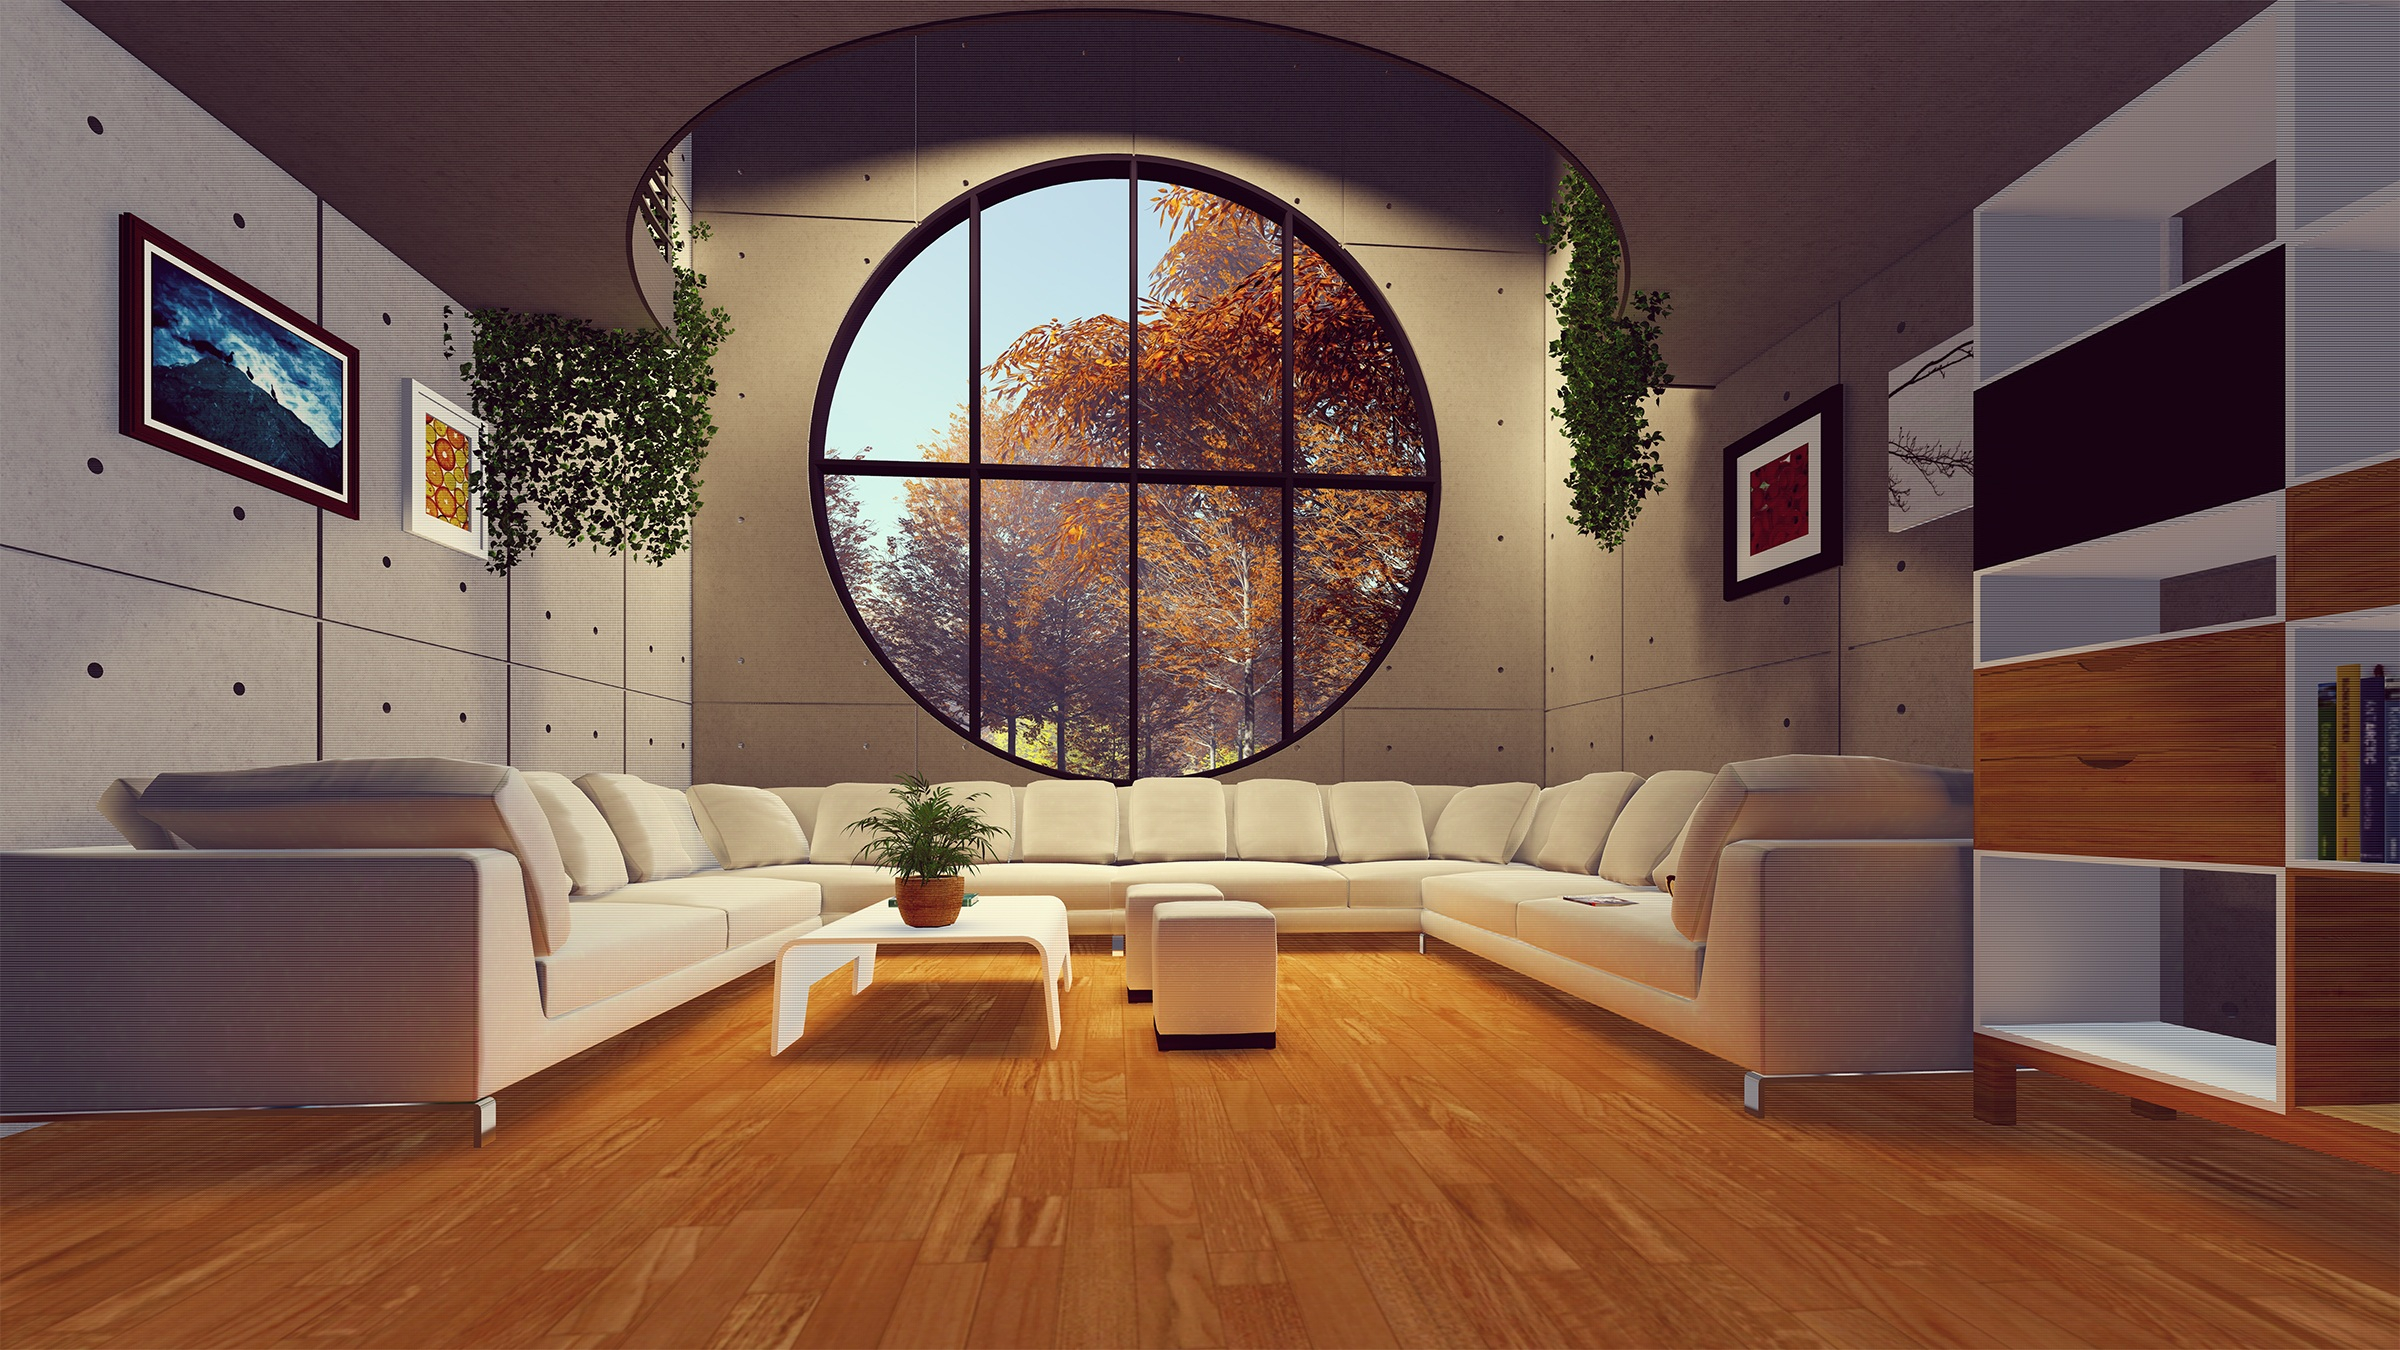 A modern living room with a showcase window